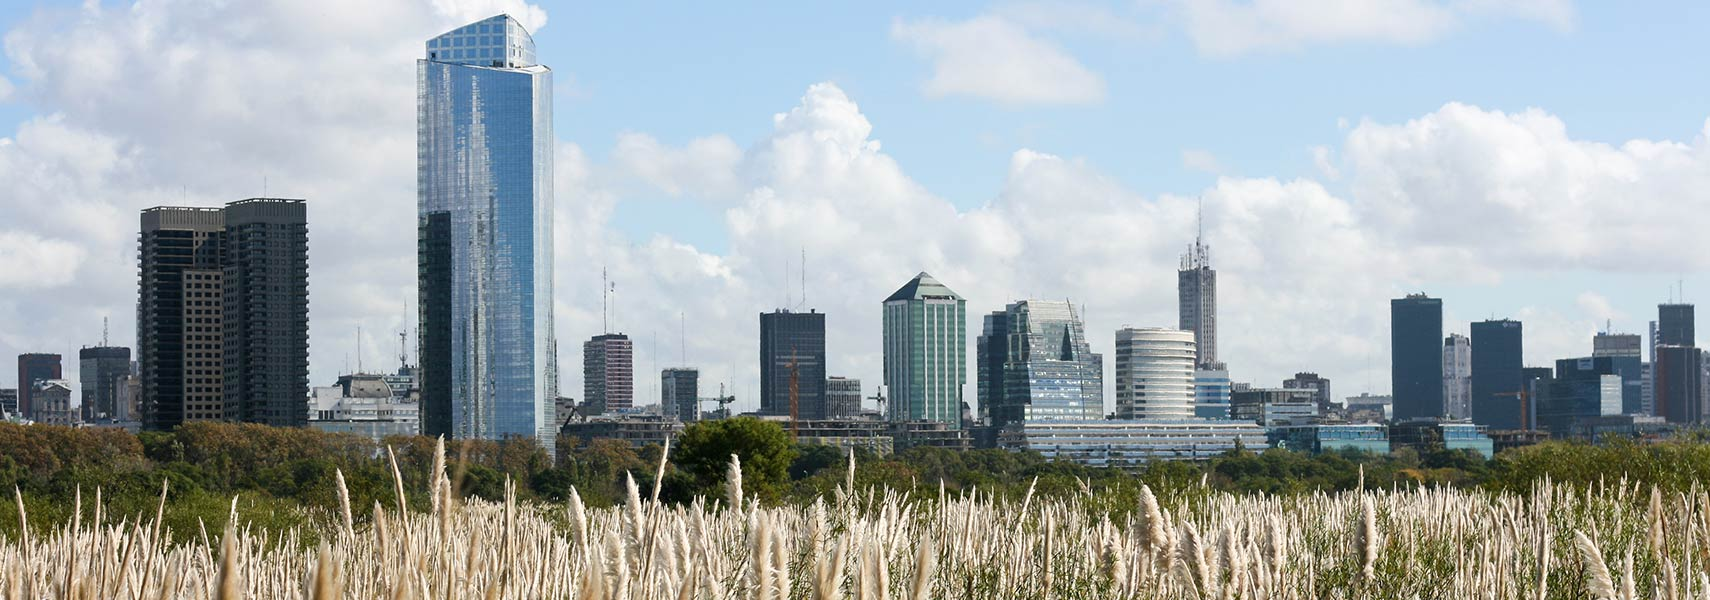 Buenos Aires skyline from Costanera Sur Ecological Reserve.